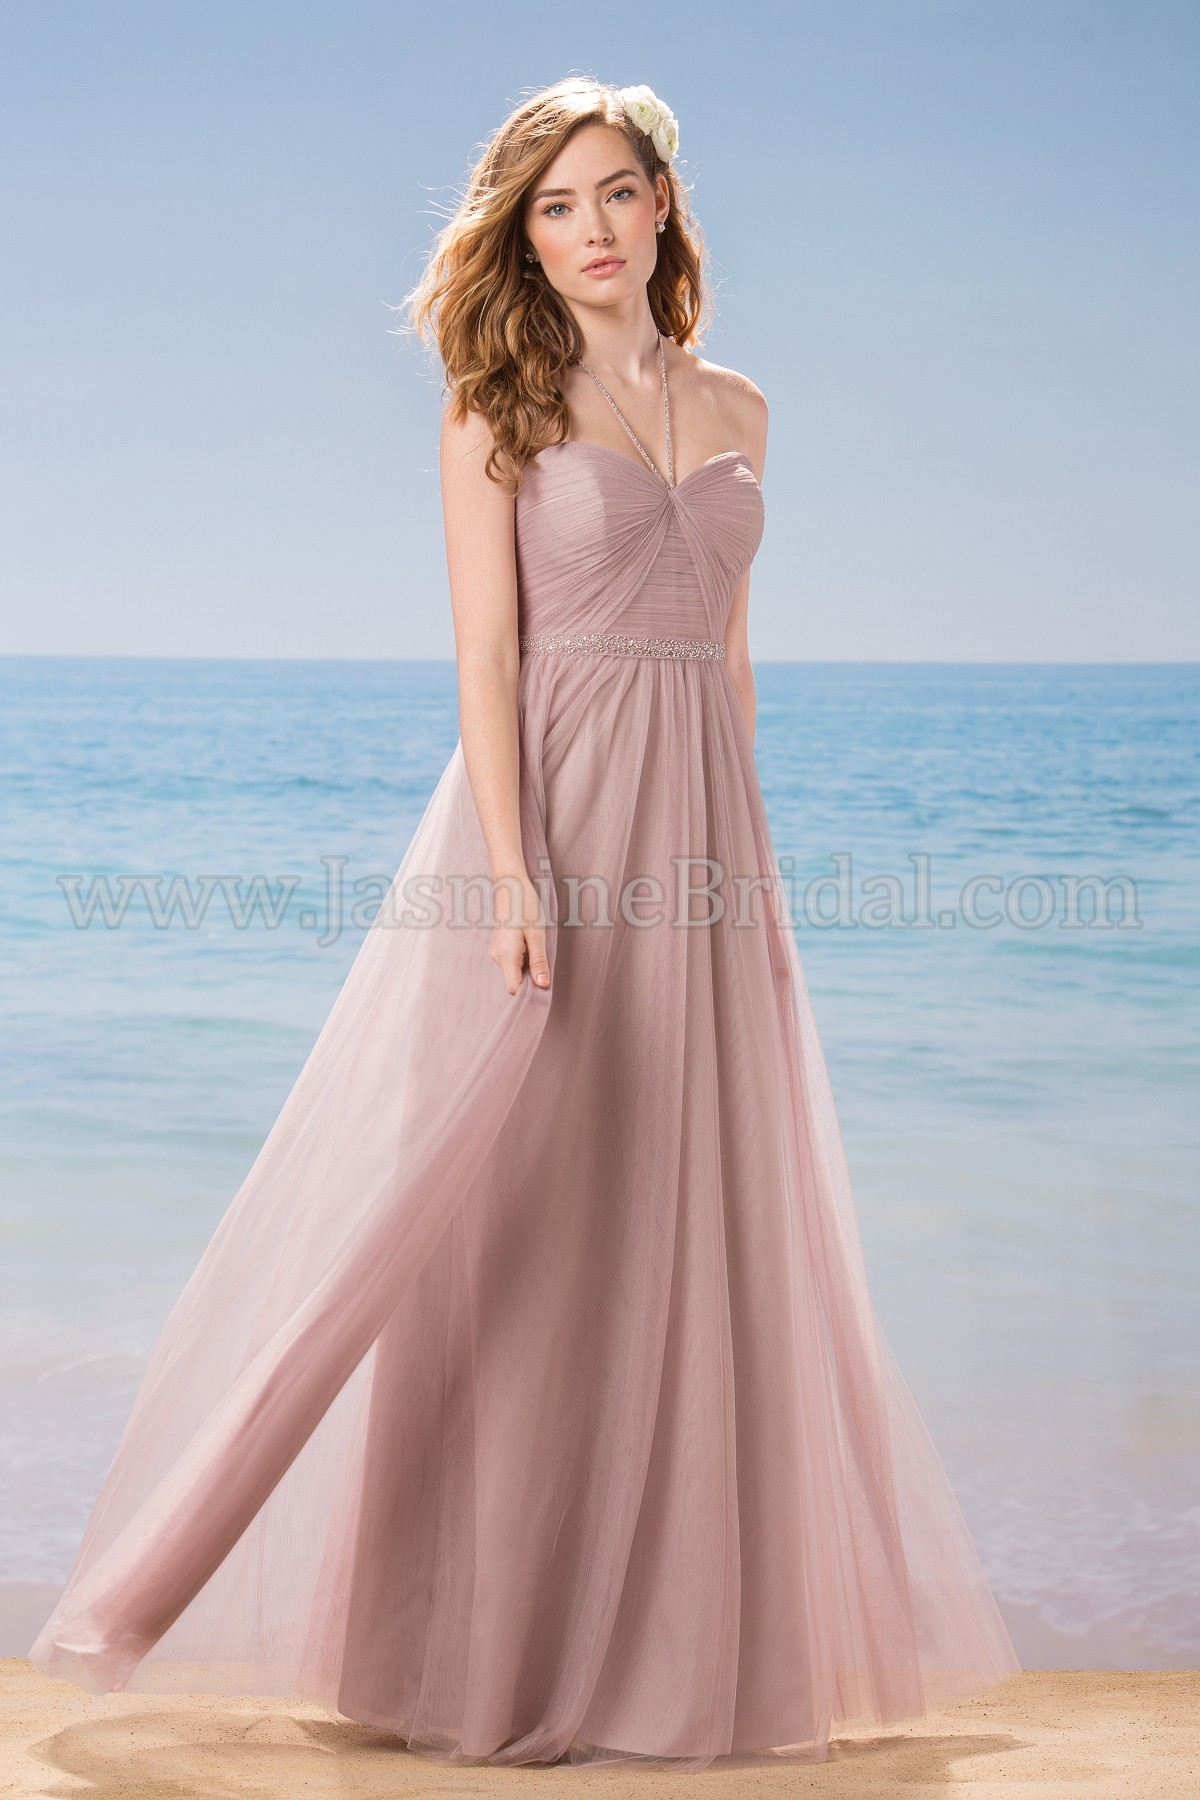 L184010 Long Strapless Halter Strap Soft Tulle Bridesmaid Dress